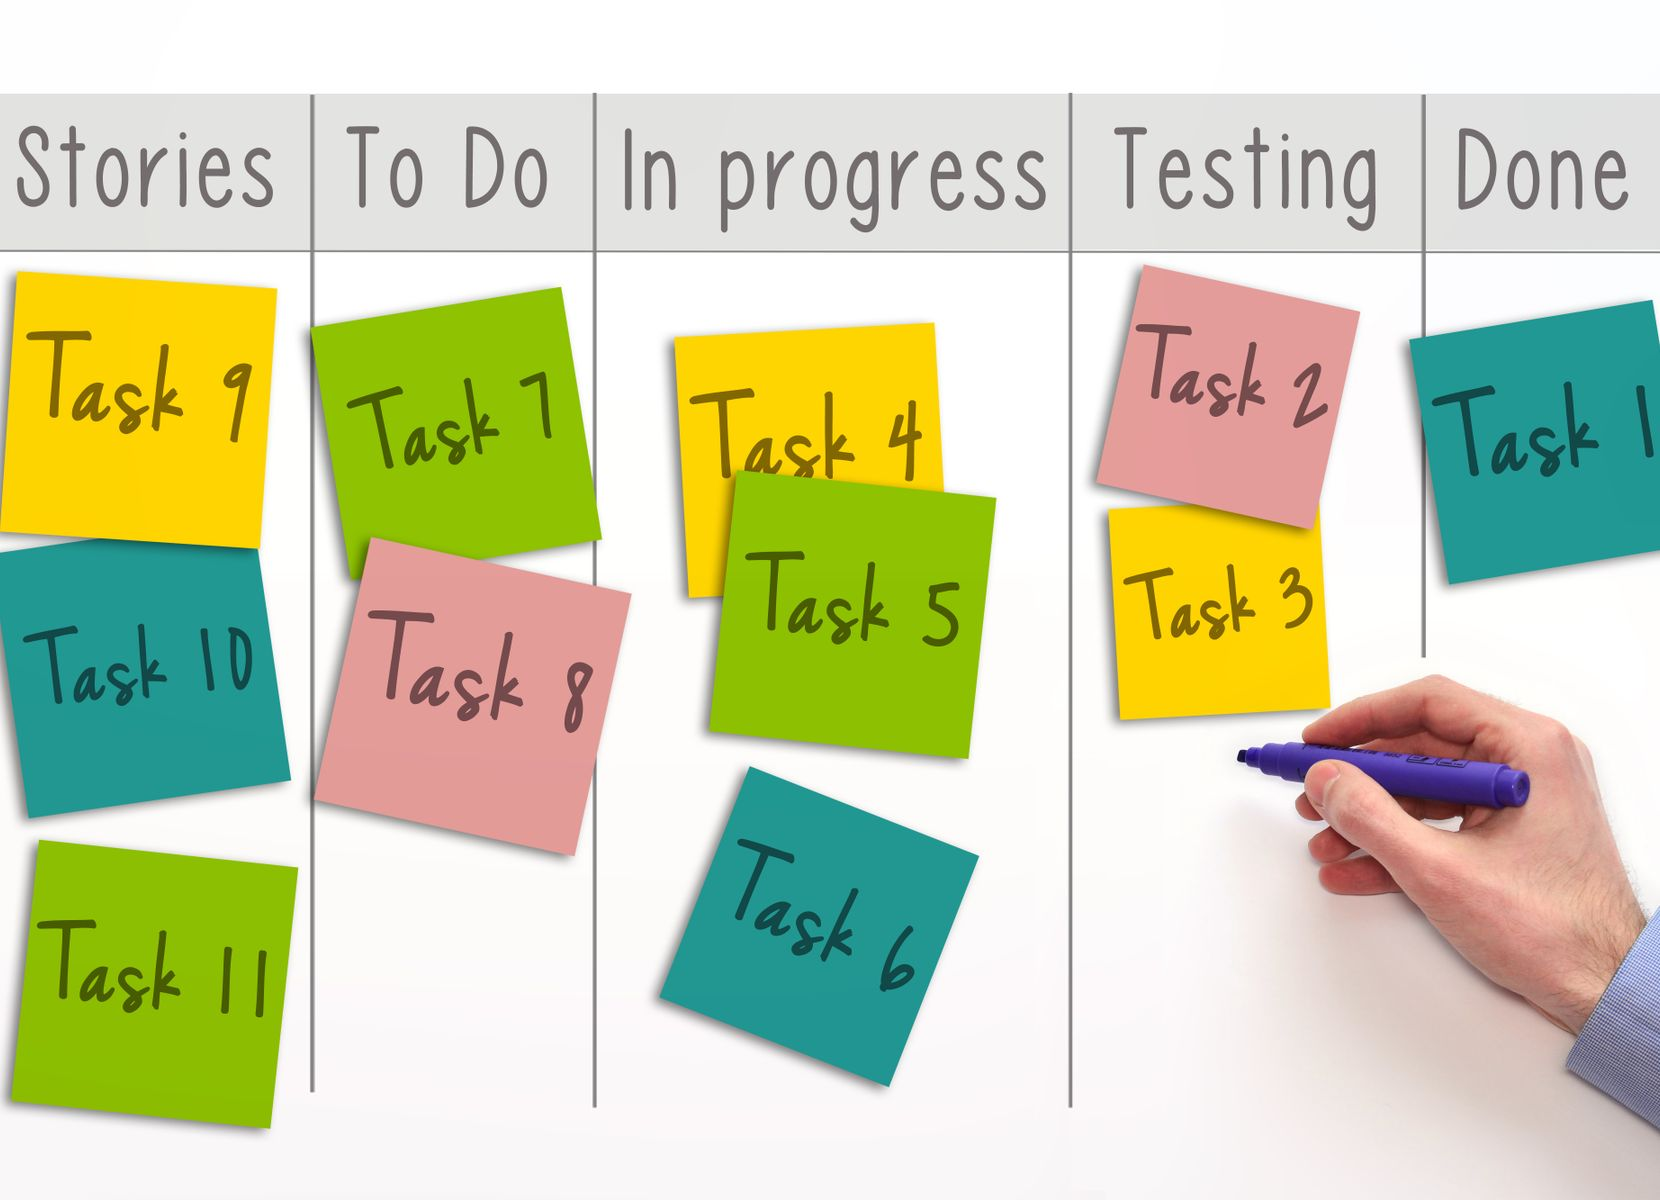 Why Should We Follow Kanban Principles For Software Development?